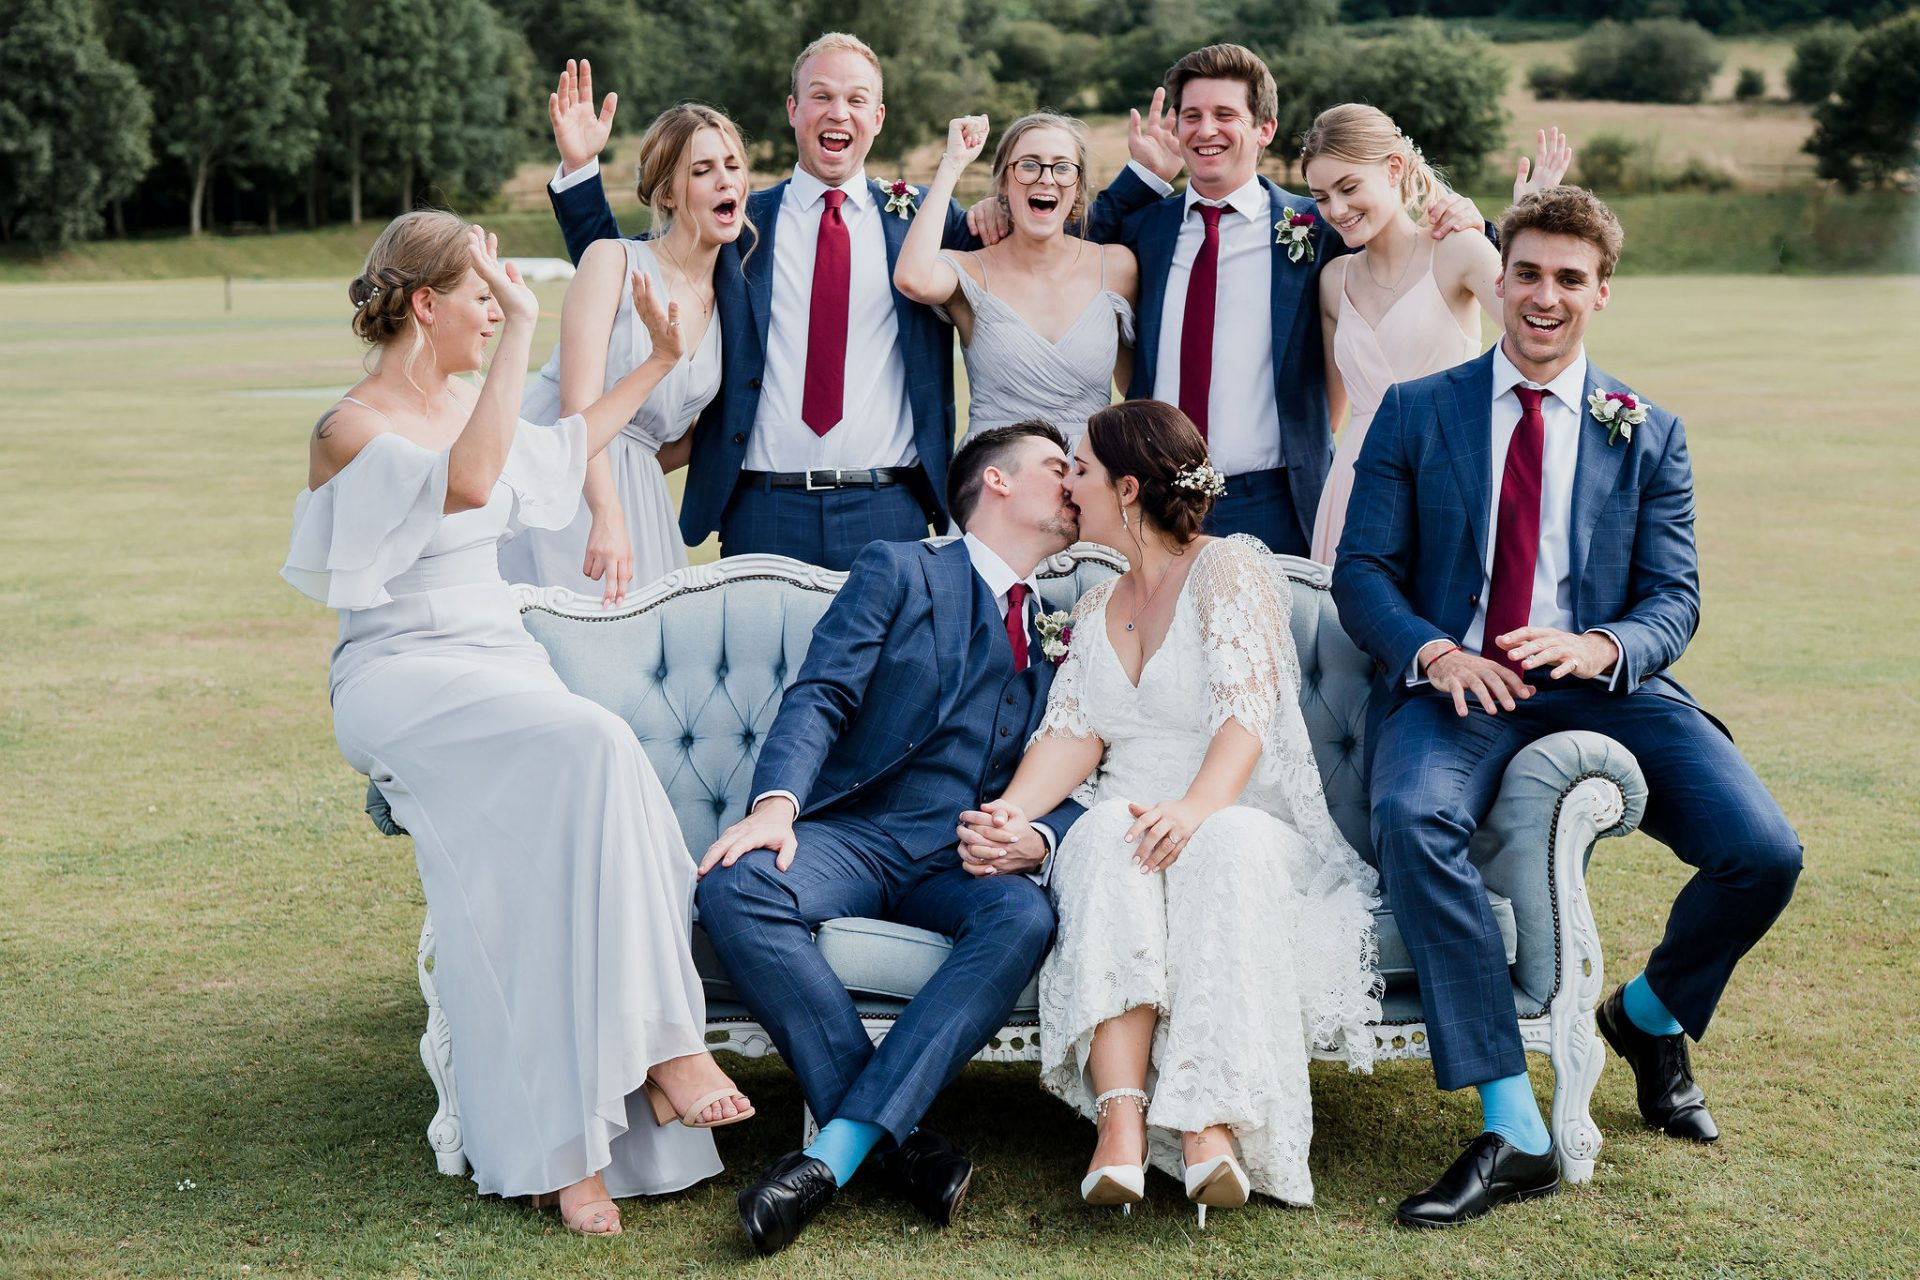 bridal party cheer as bride and groom kiss